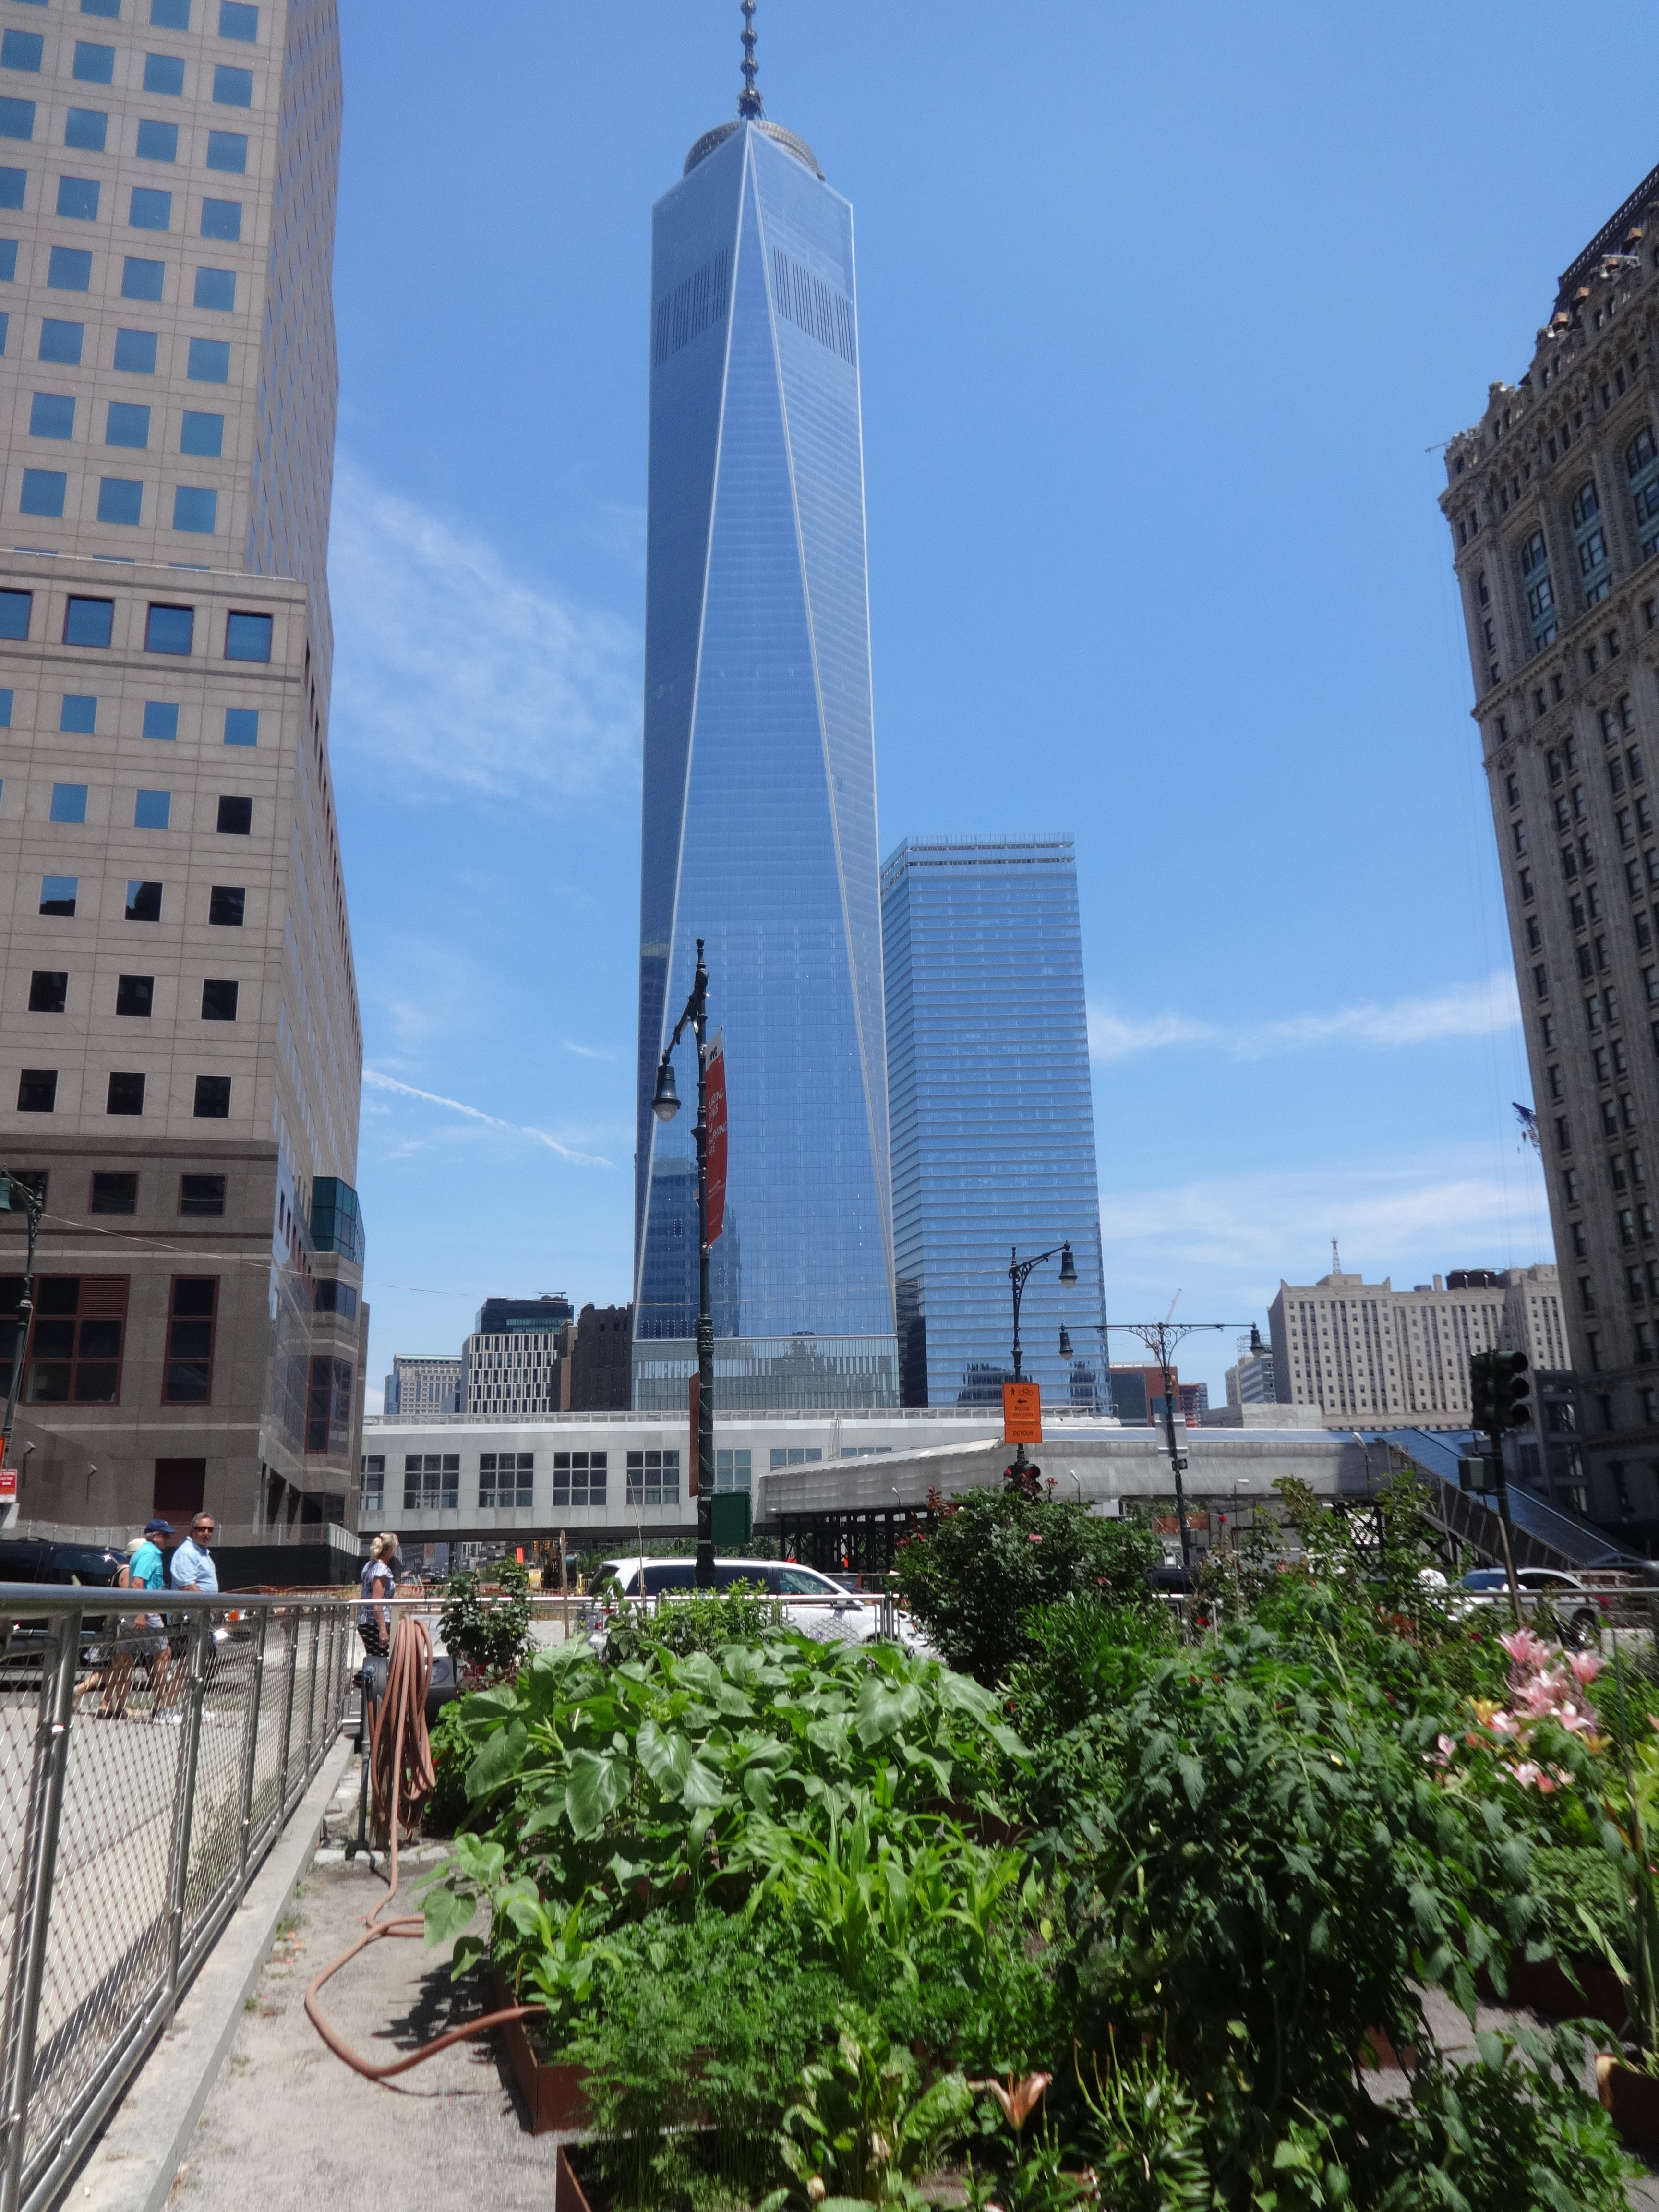 Garden and Freedom Tower 6-29-2014